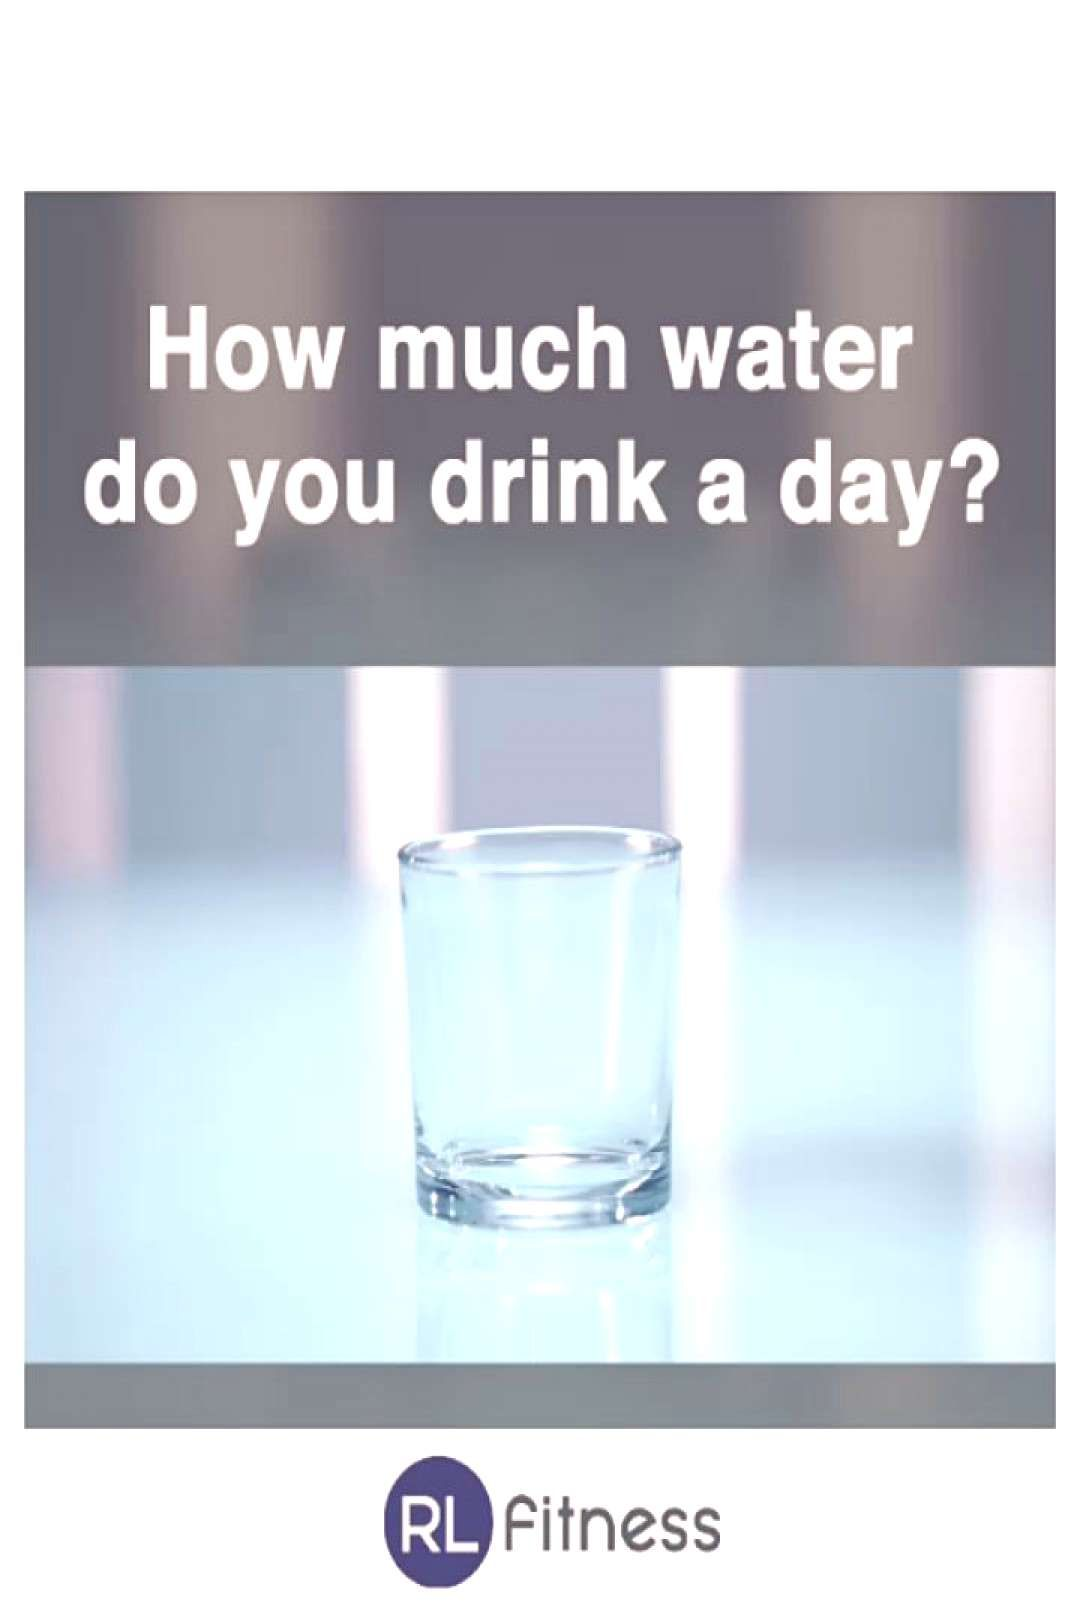 #drinkwater #water #drink #where #much #near #how #you #day #bet #do #no #as #a #i How much water do you drink a day?   I bet no where near asYou can find Drink water and more on our website.How much water do you drink a day?  ...